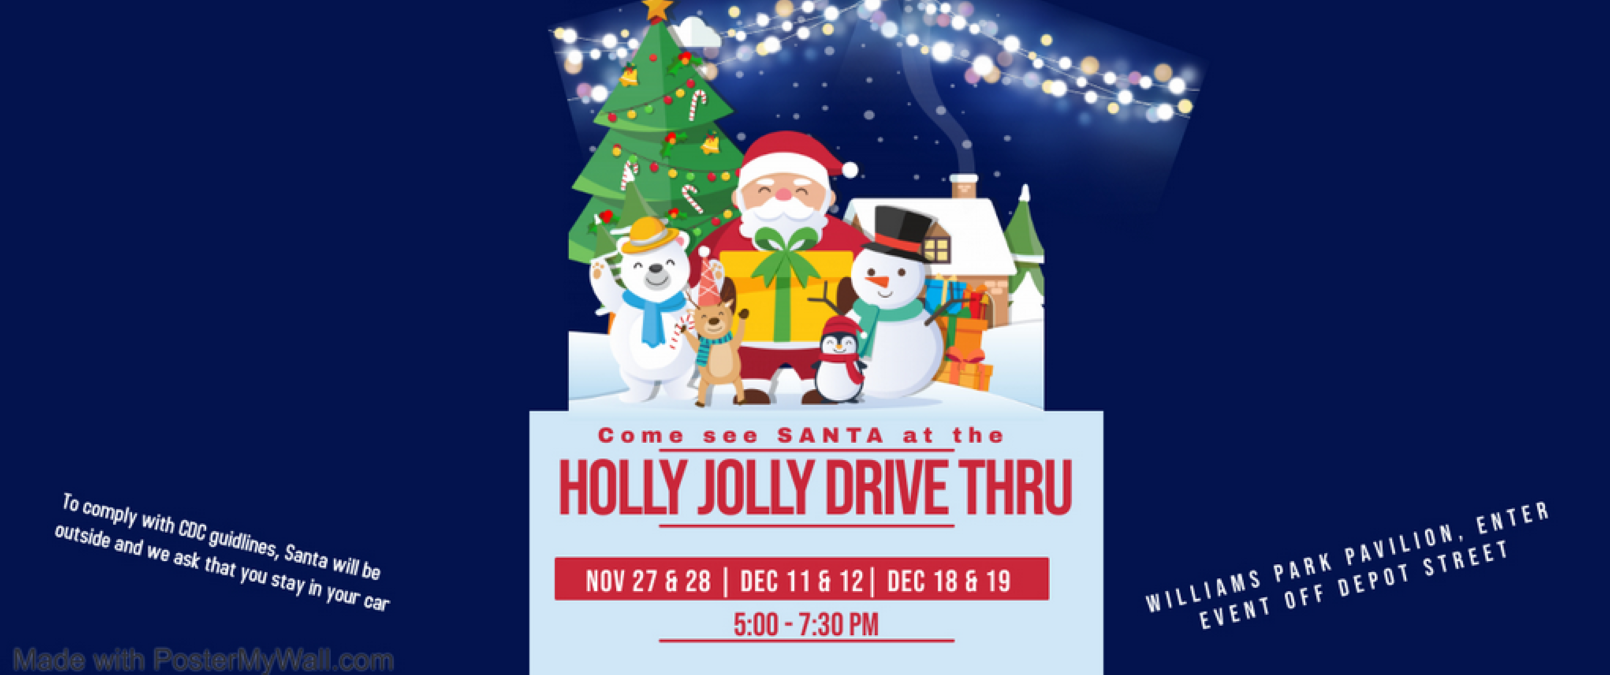 Holly Jolly Drive Thru with Santa in Antioch